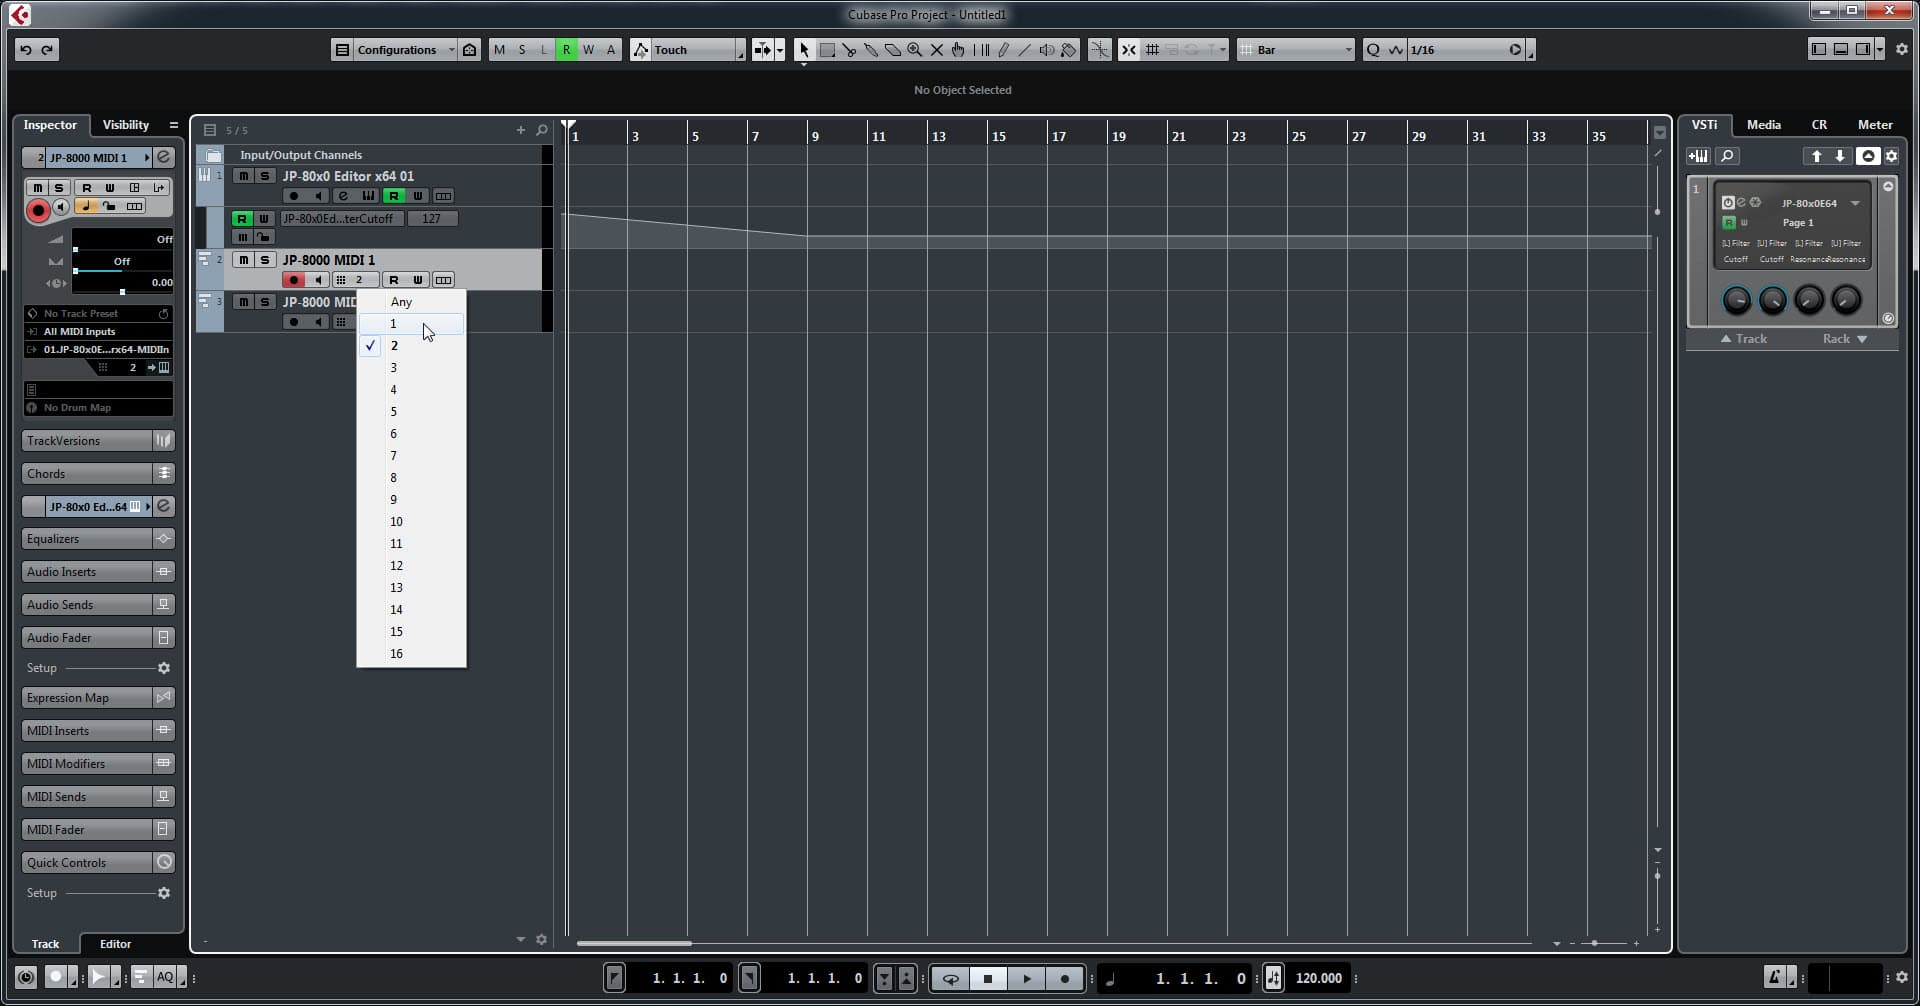 Steinberg Cubase Config - Assign MIDI Channels Appropriately